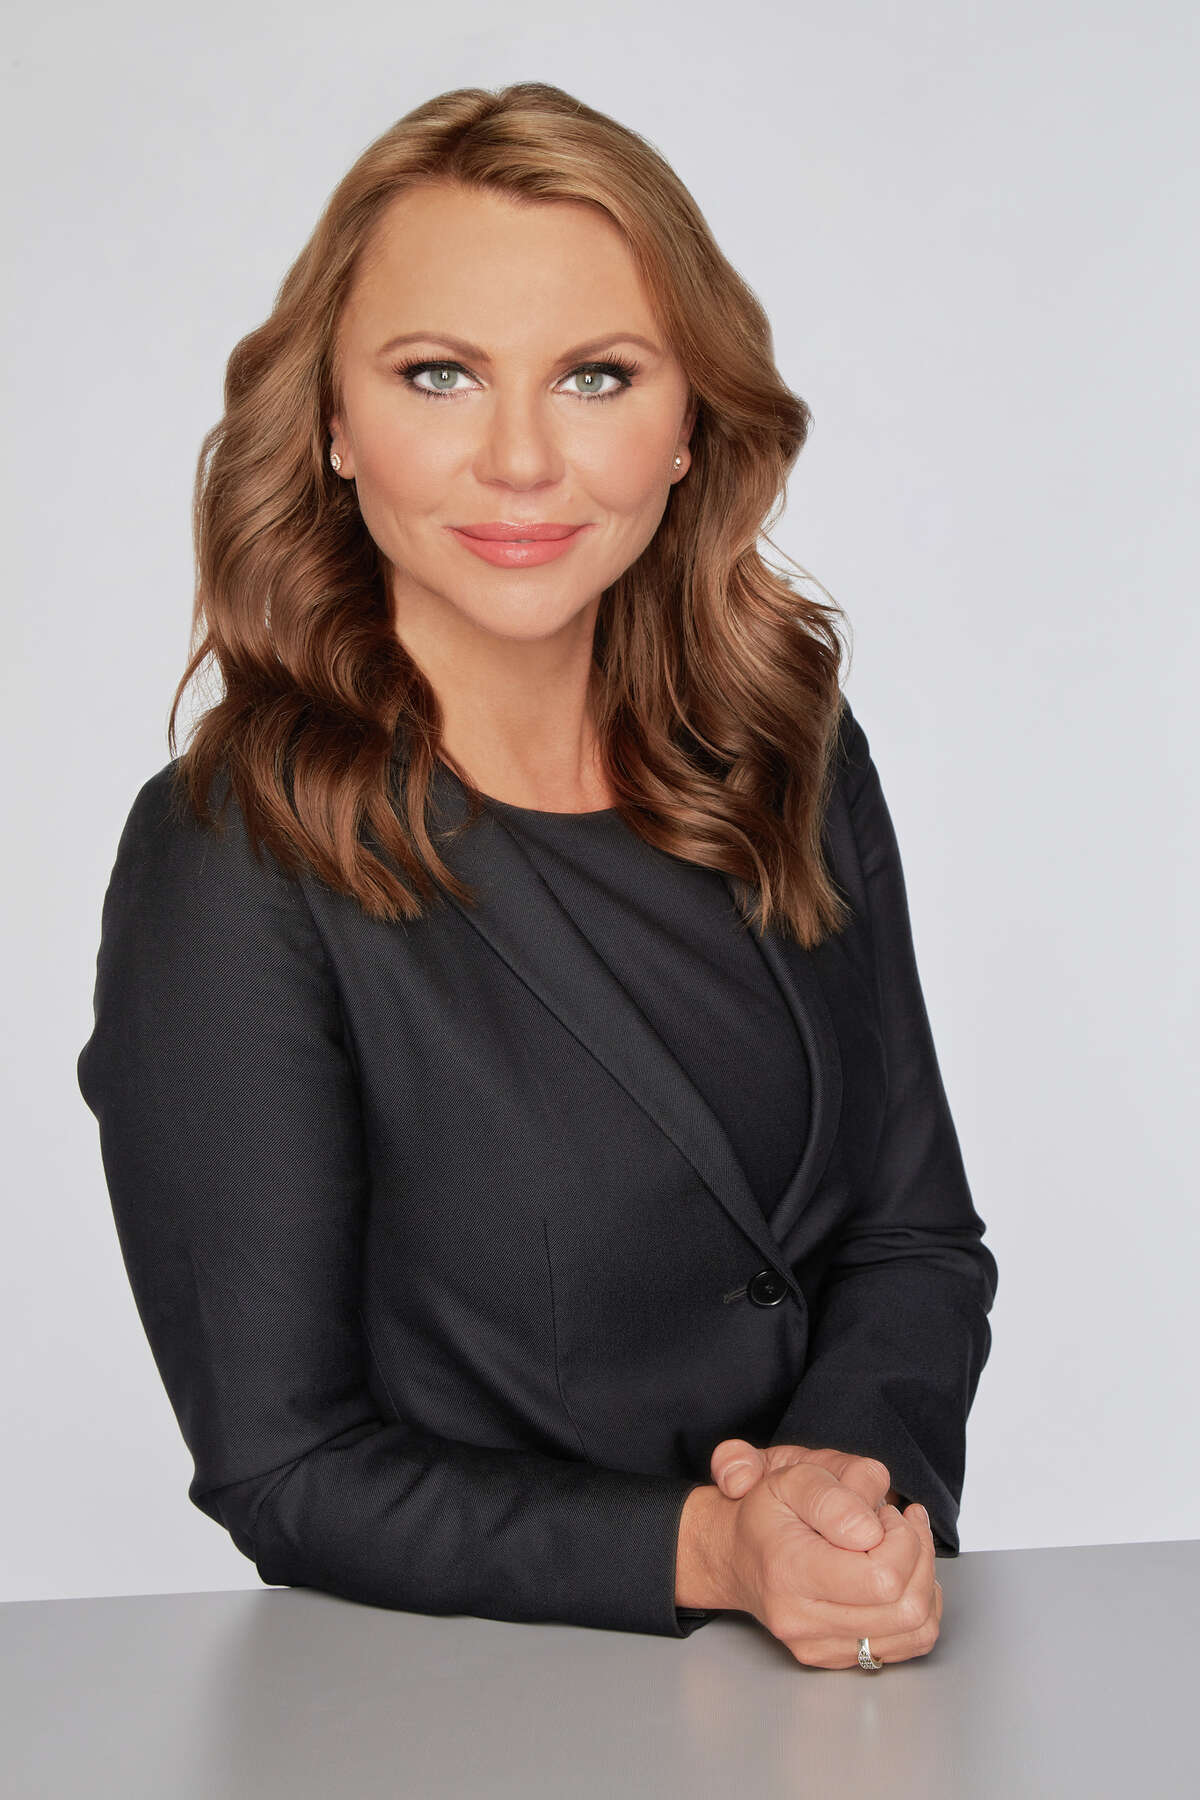 Lara Logan will present a four-part docuseries for FOX Nation, the on-demand subscription based streaming service.